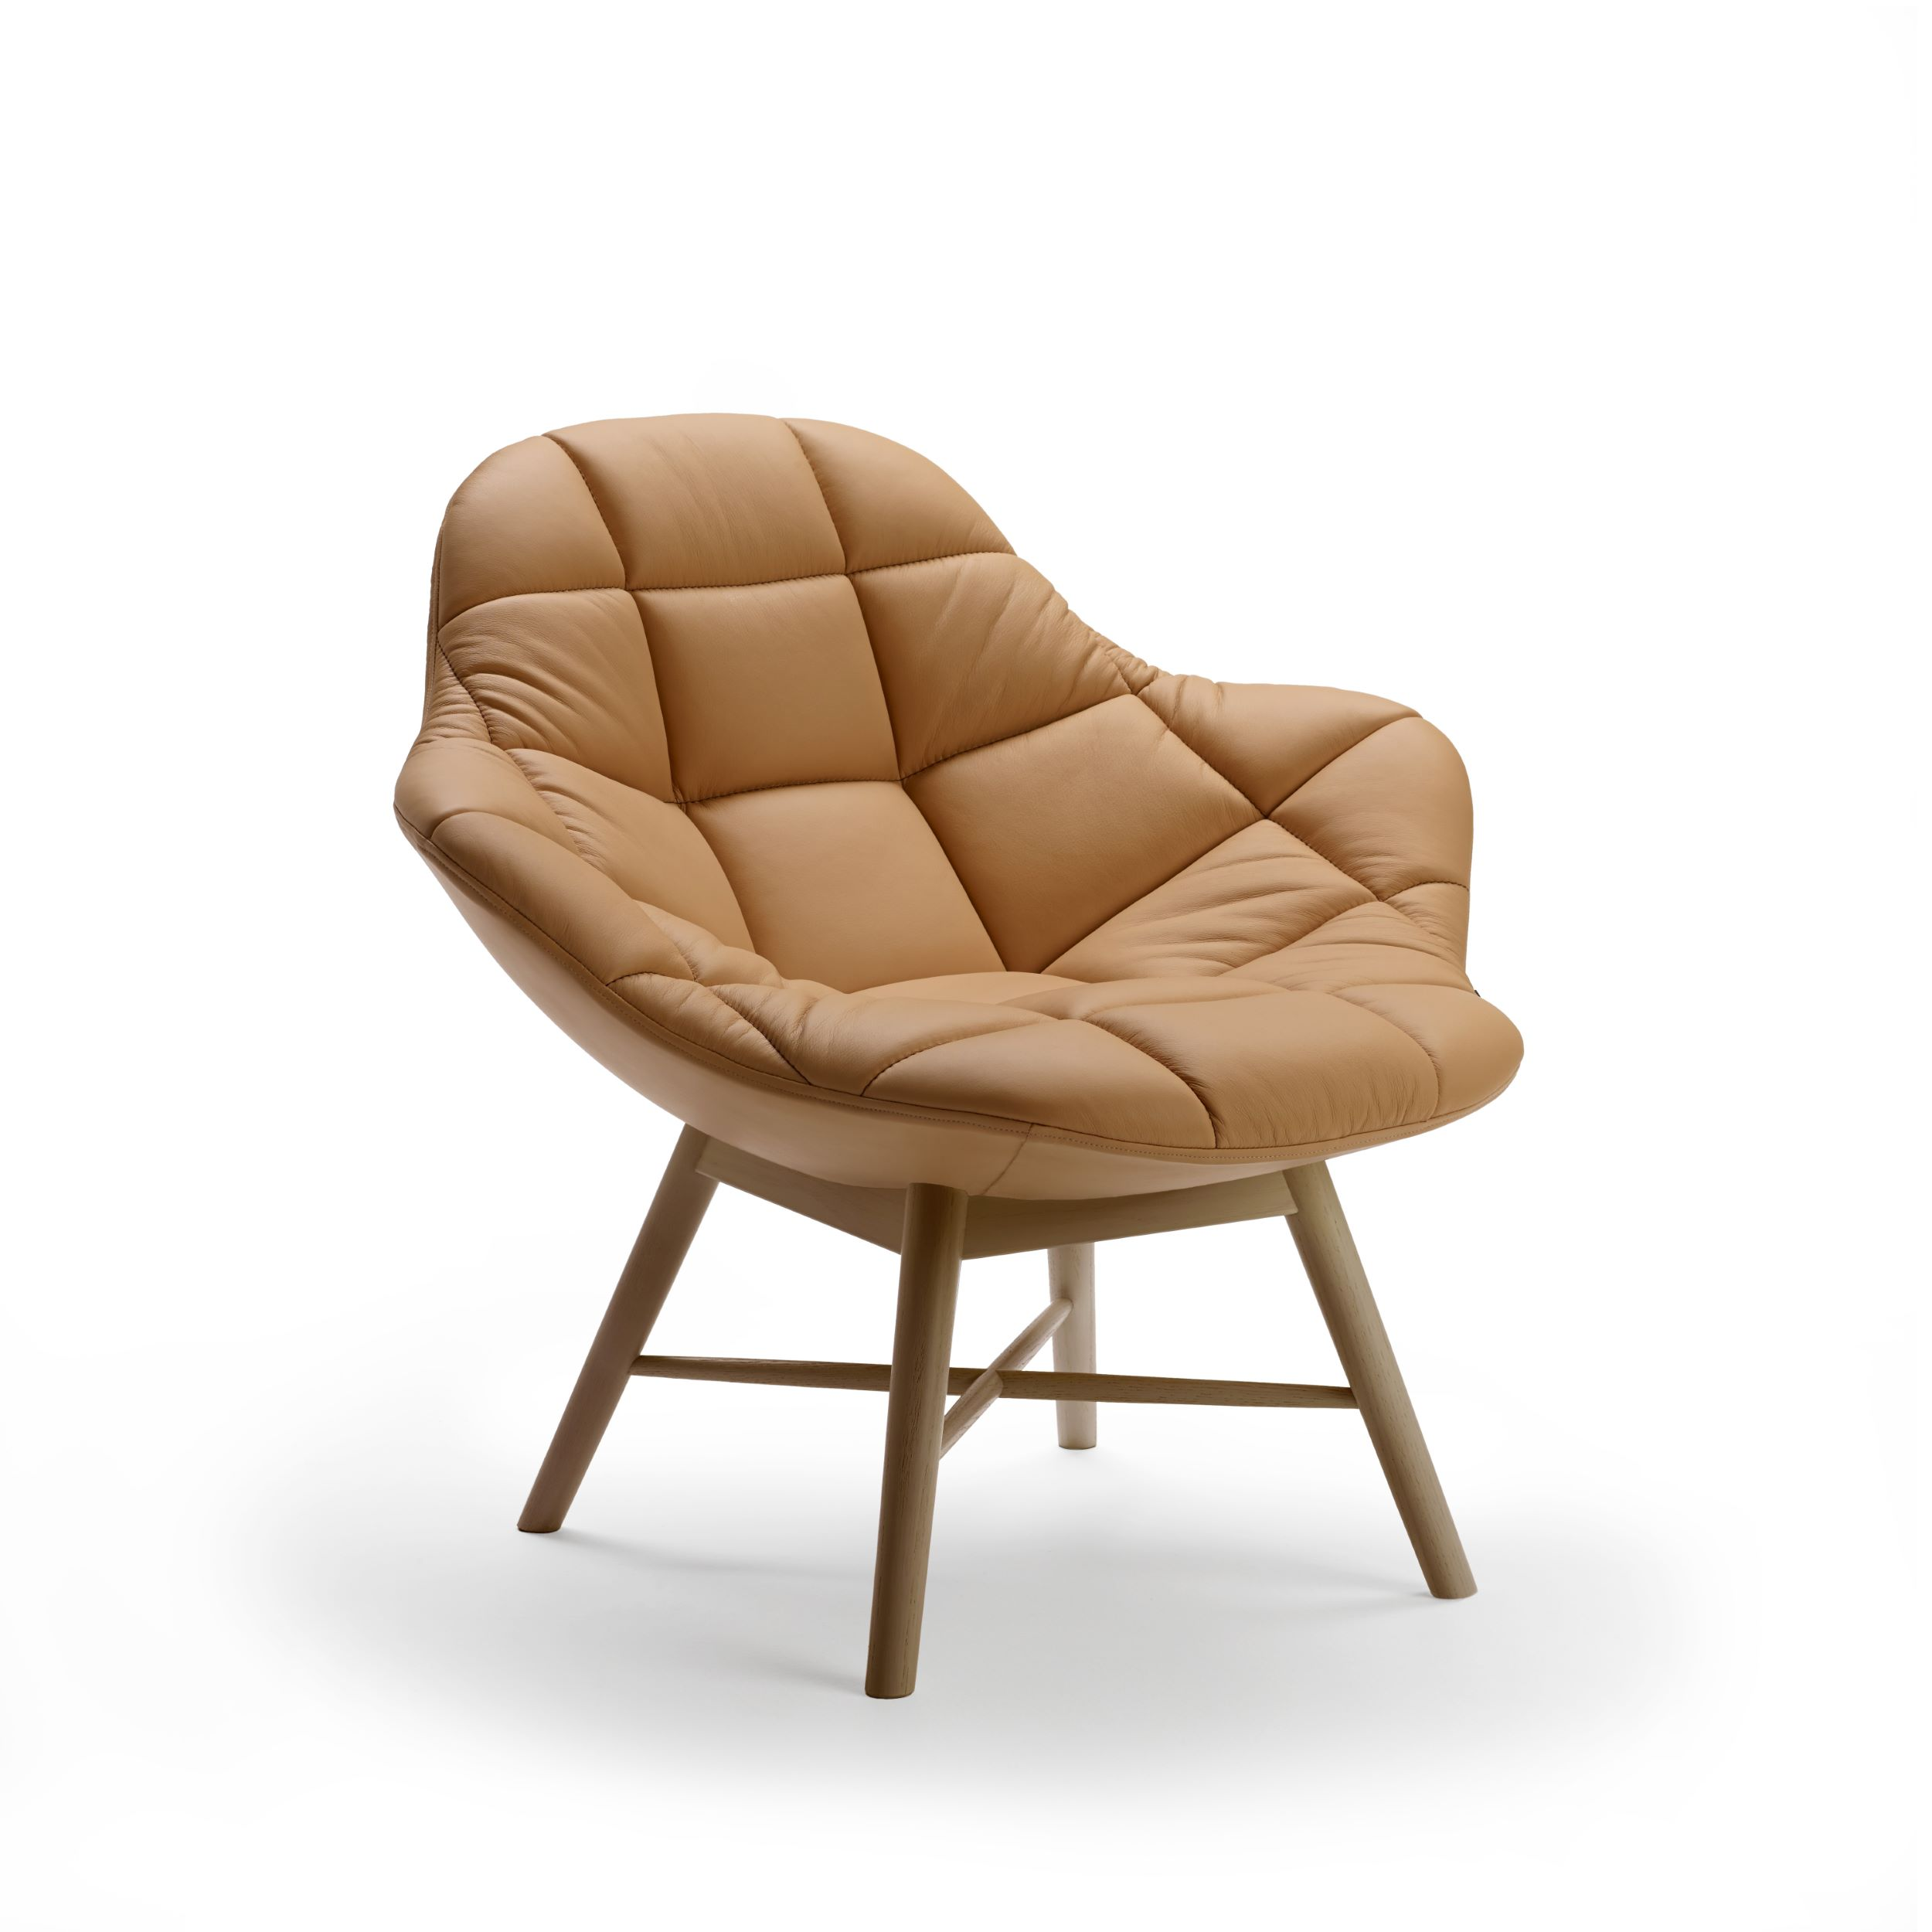 Easy Chairs Palma Wood Easy Chair Lounge Seating By Khodi Feiz